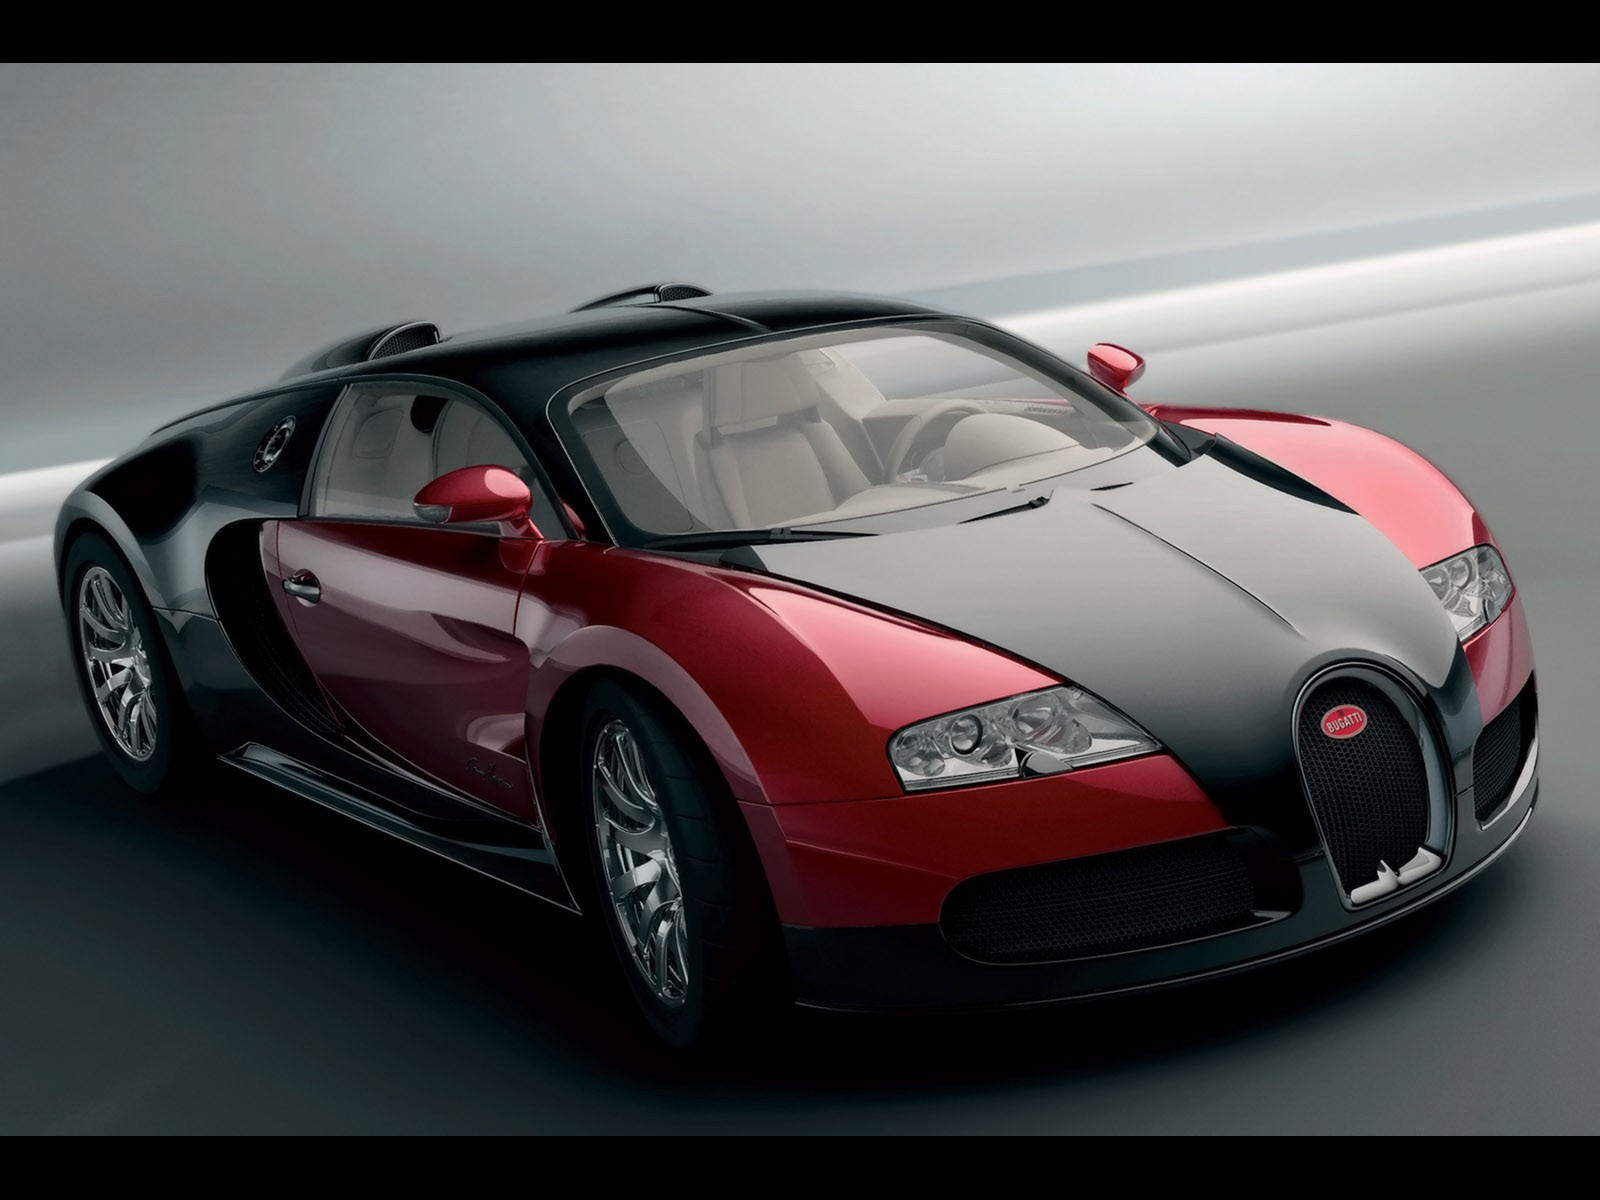 Bugatti Veyron Cool Car Desktop Pictures New Sport Car